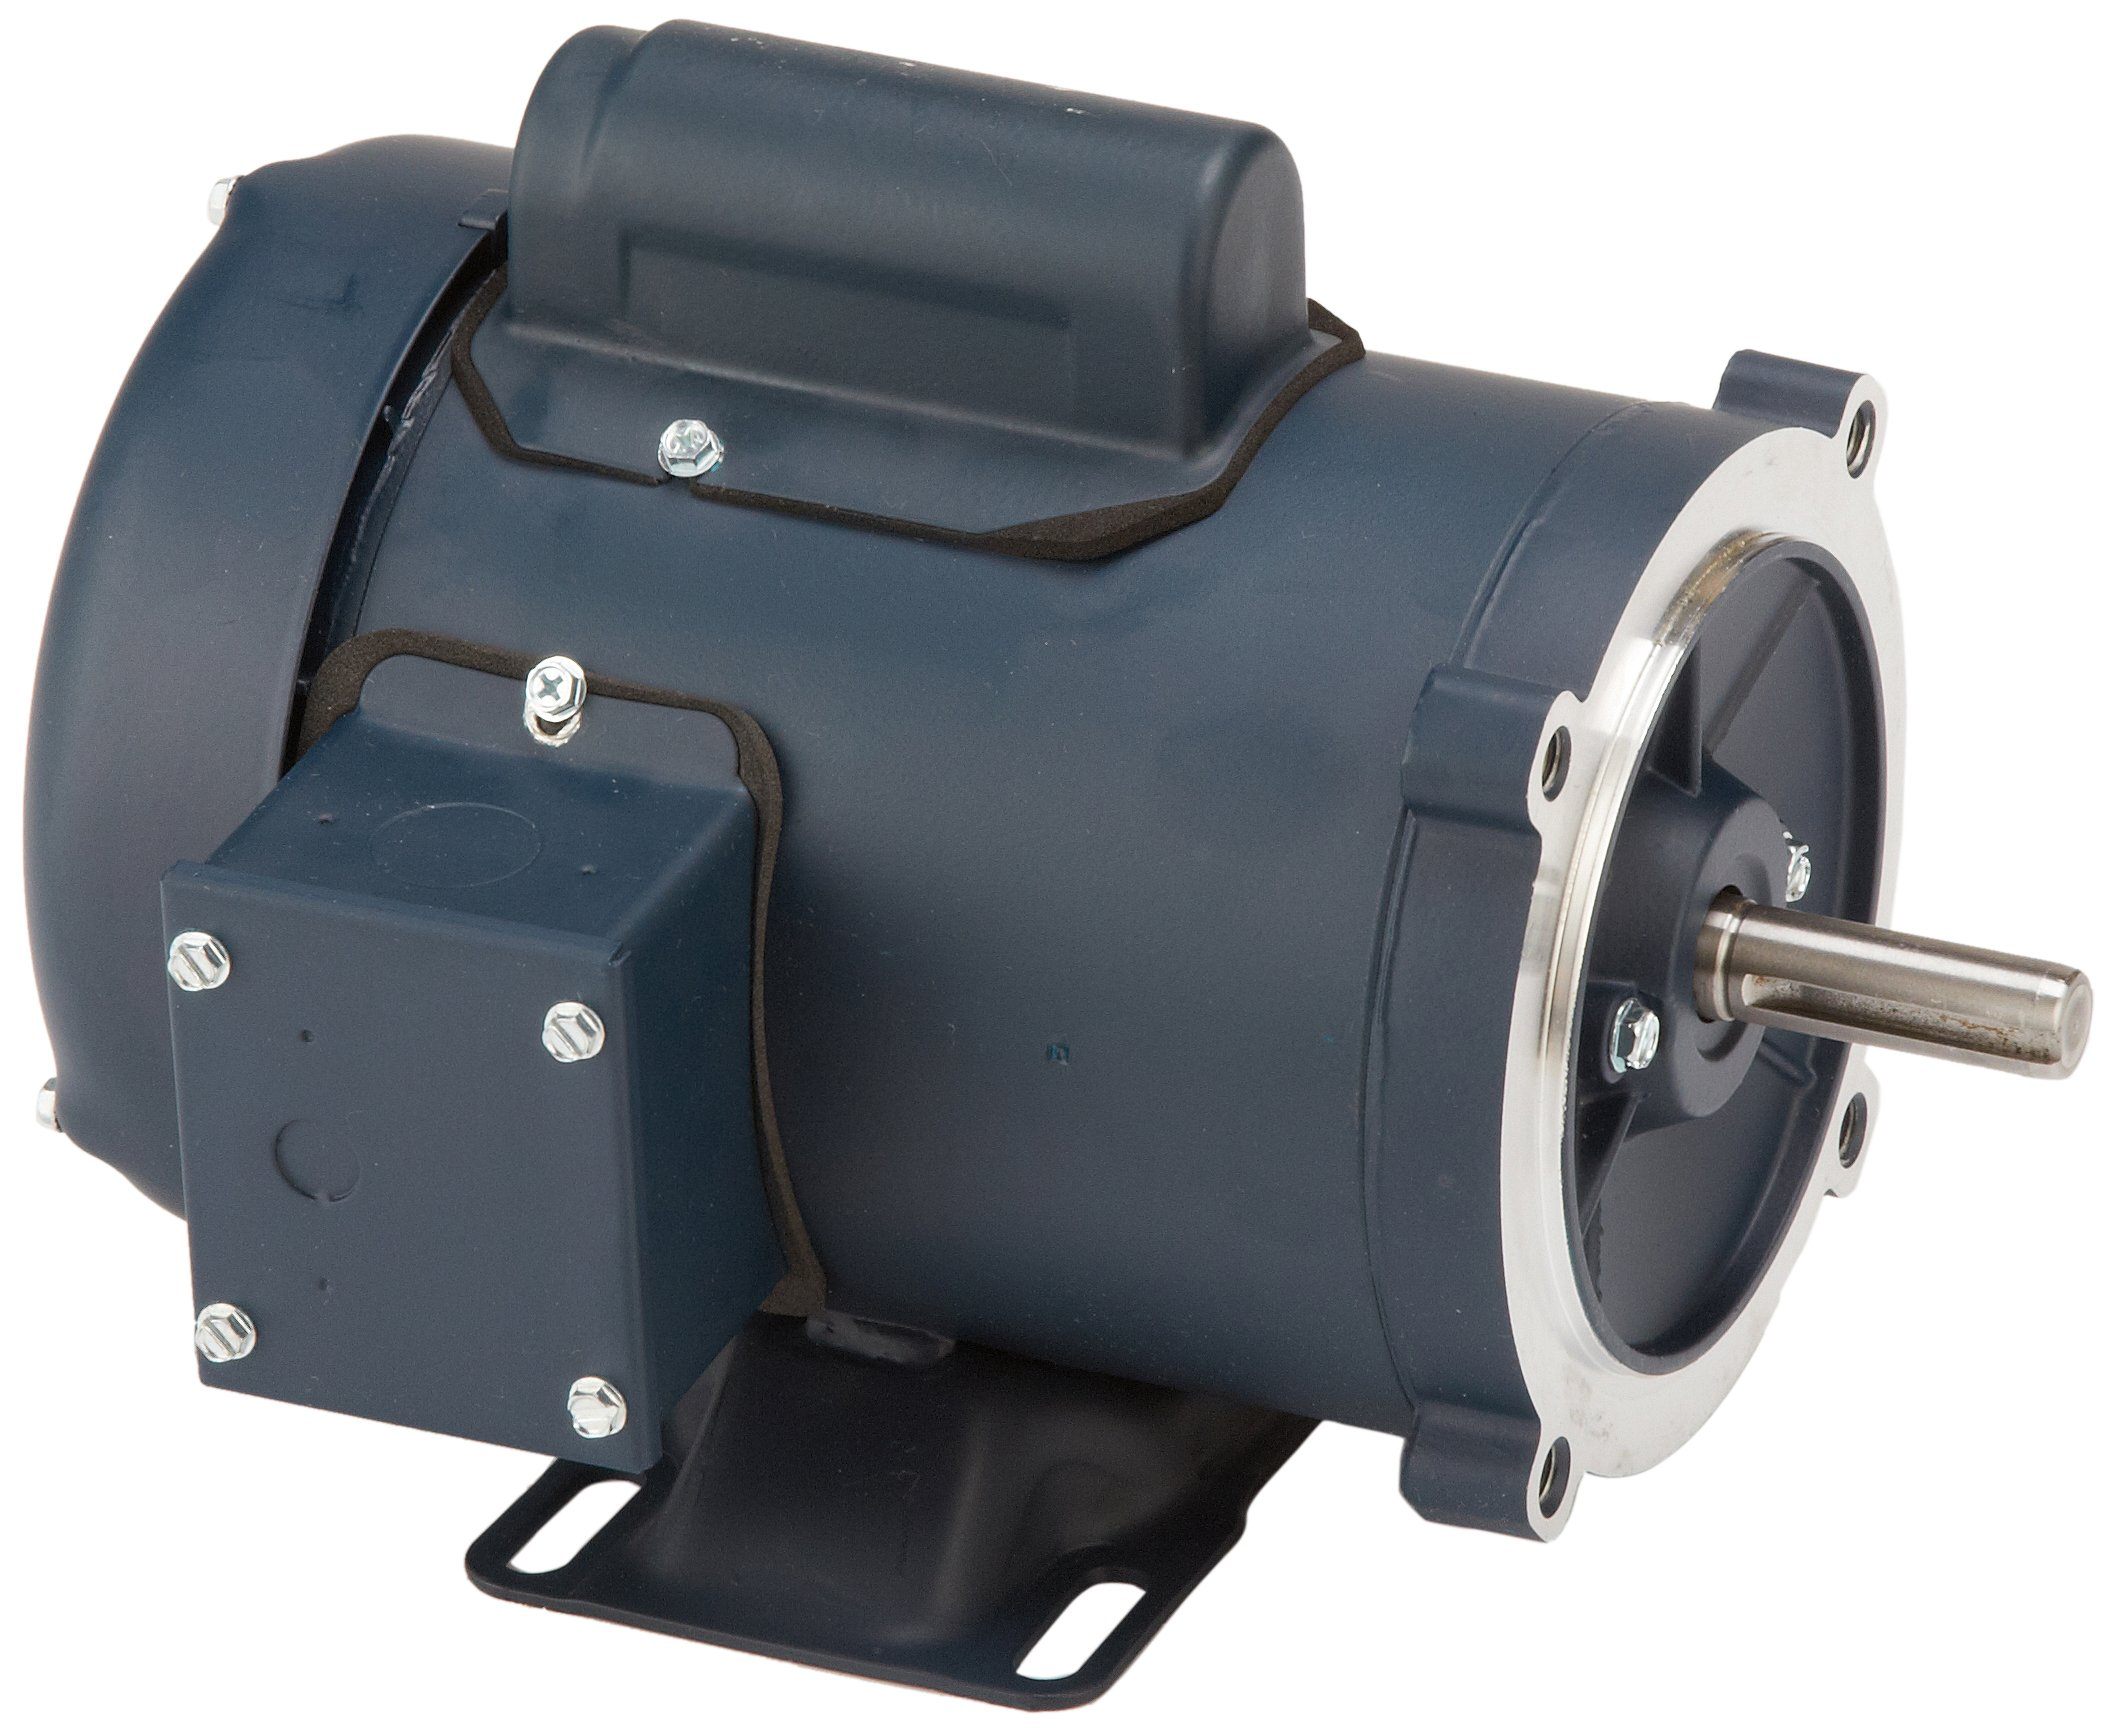 Leeson 102907.00 General Purpose C Face Motor, 1 Phase, S56C Frame, Rigid Mounting, 1/2HP, 1800 RPM, 115/208-230V Voltage, 60Hz Fequency